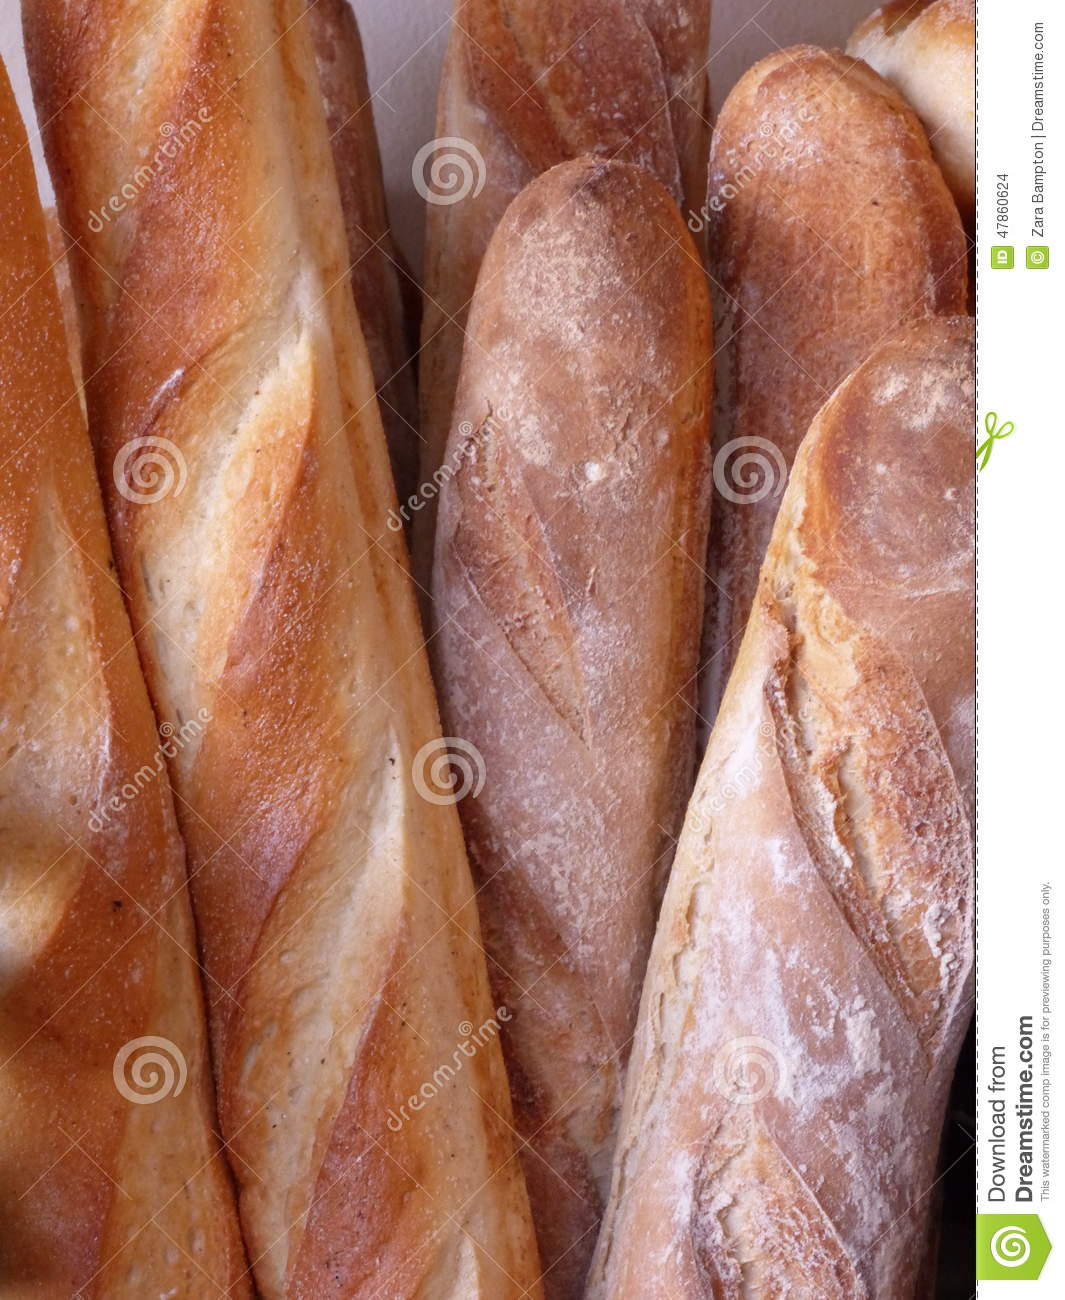 French loaves